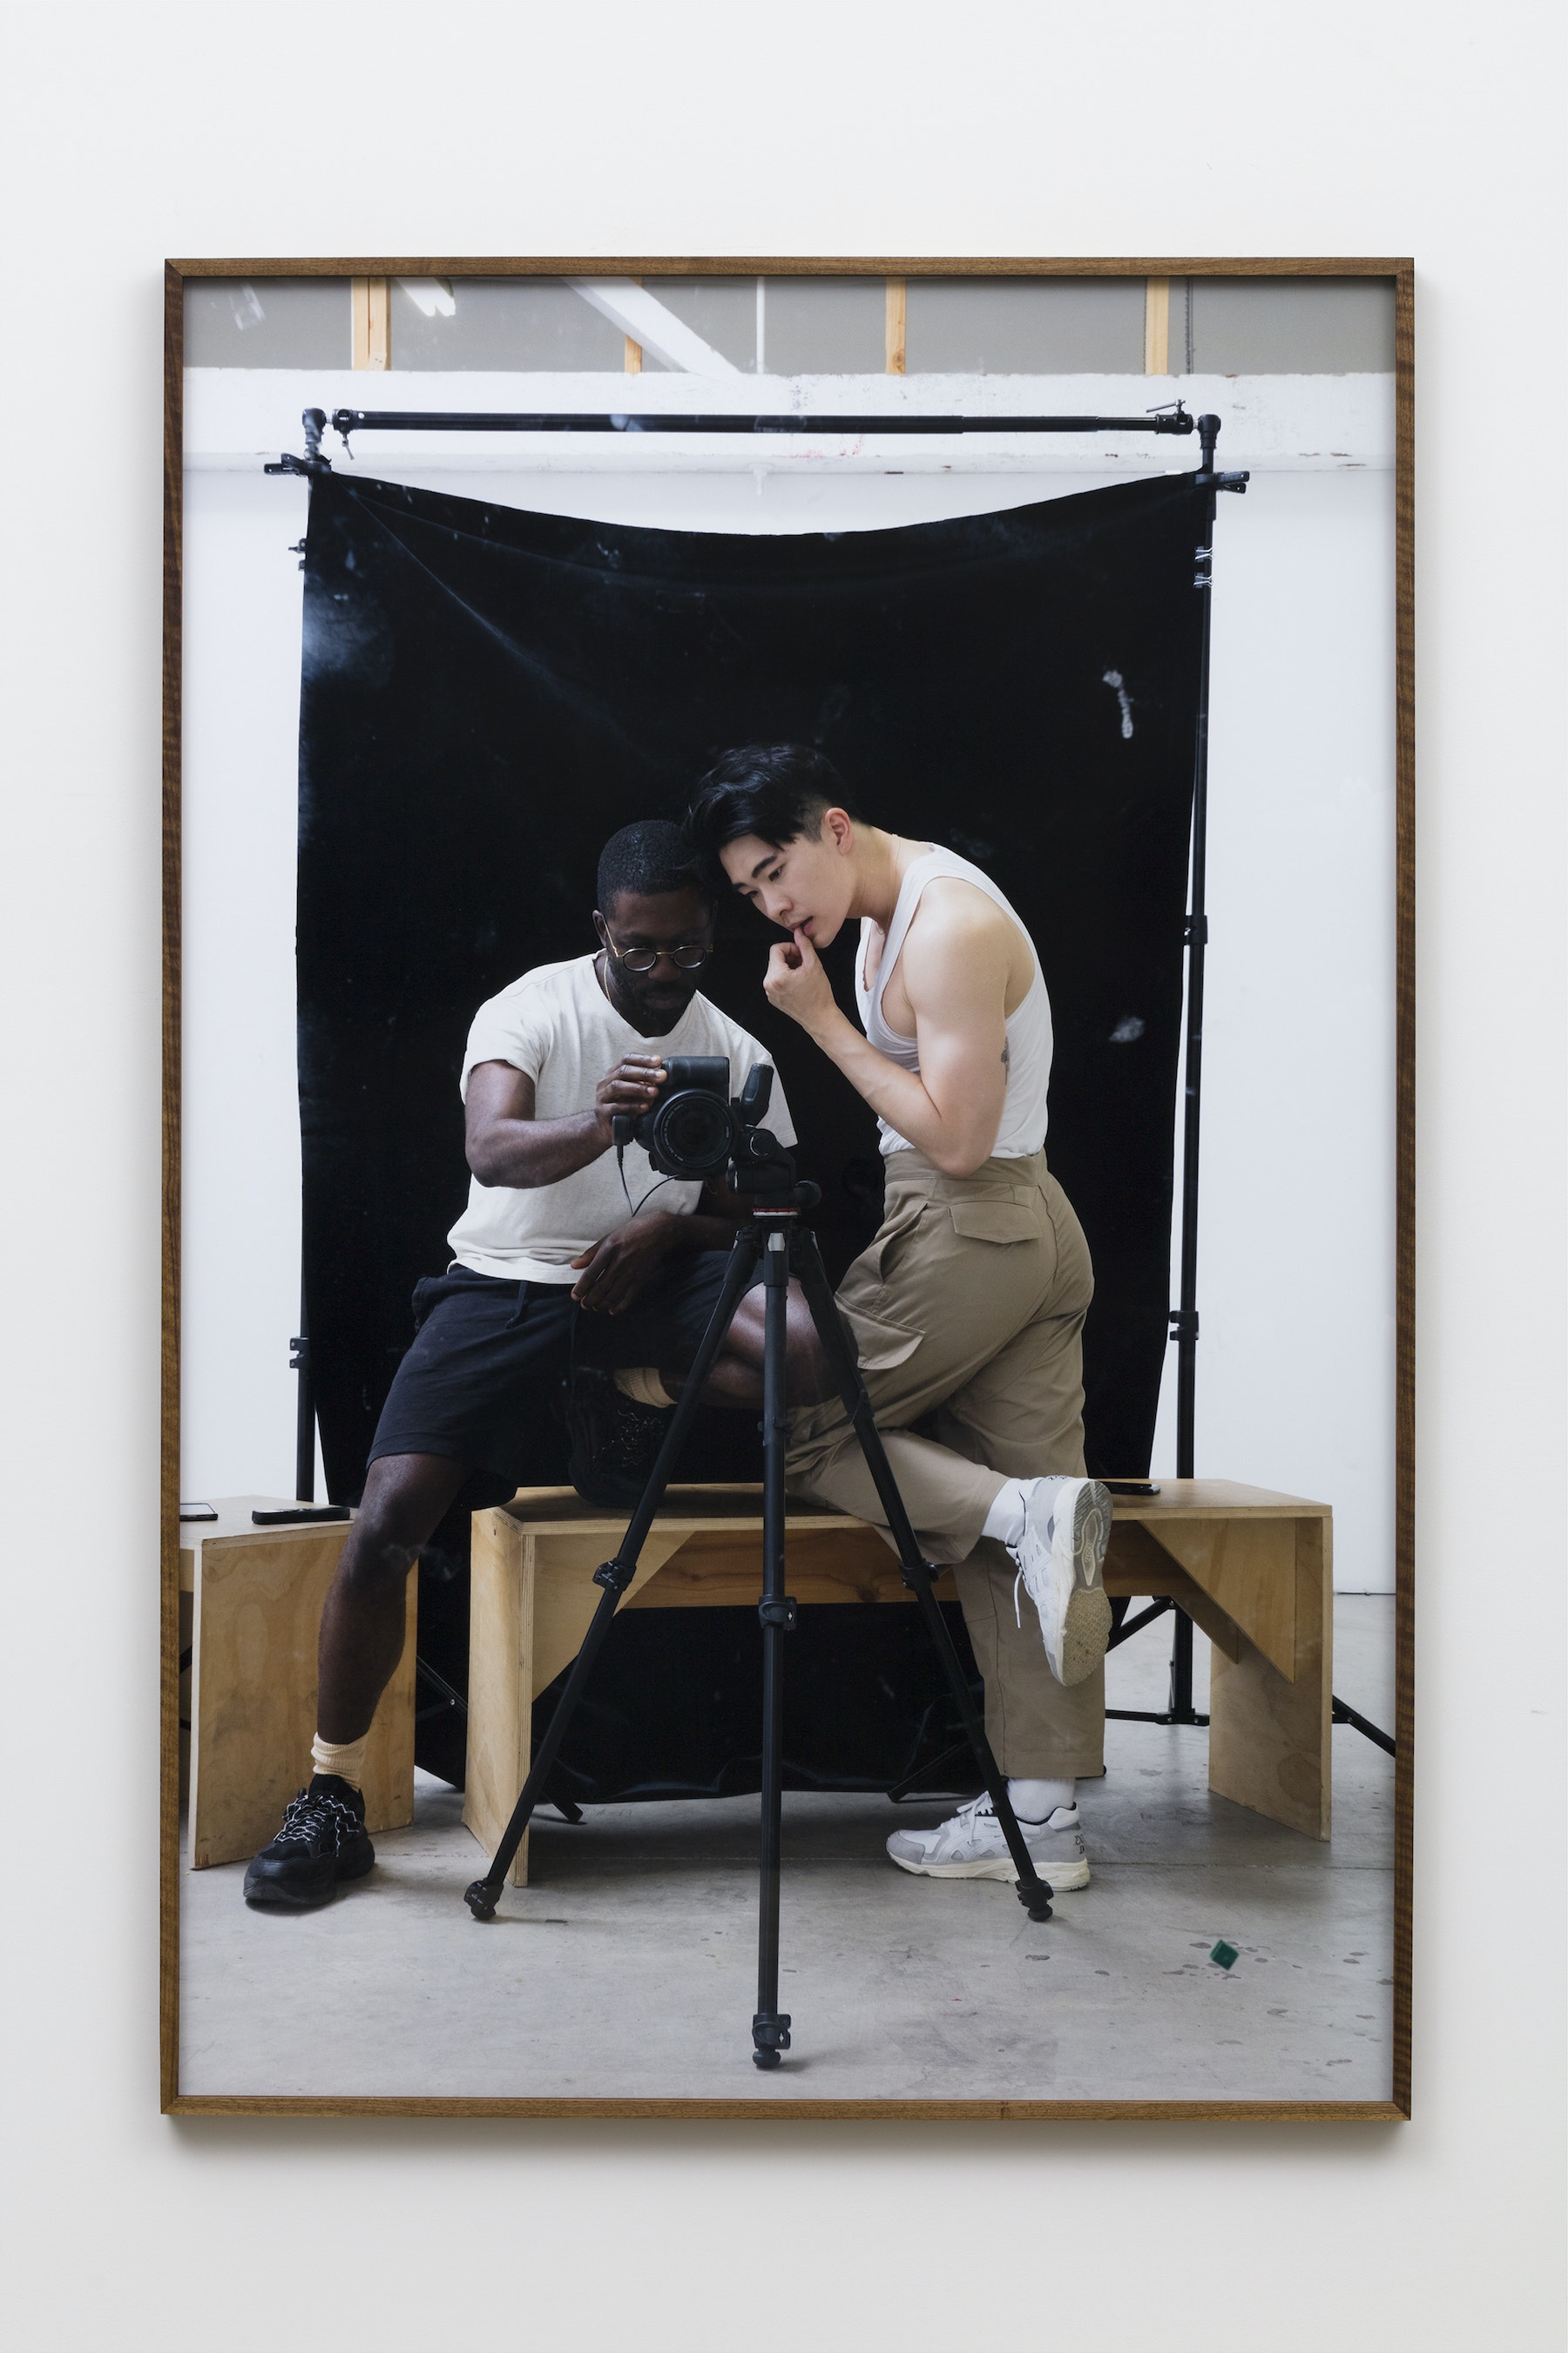 """Paul Mpagi Sepuya """"A conversation around pictures (0X5A5079),"""" 2019 Archival pigment print 75 x 50"""" [HxW] (190.5 x 127 cm) Edition of 5, 2 AP Inventory #SEP646 Courtesy of the artist and Vielmetter Los Angeles Photo credit: Jeff McLane"""